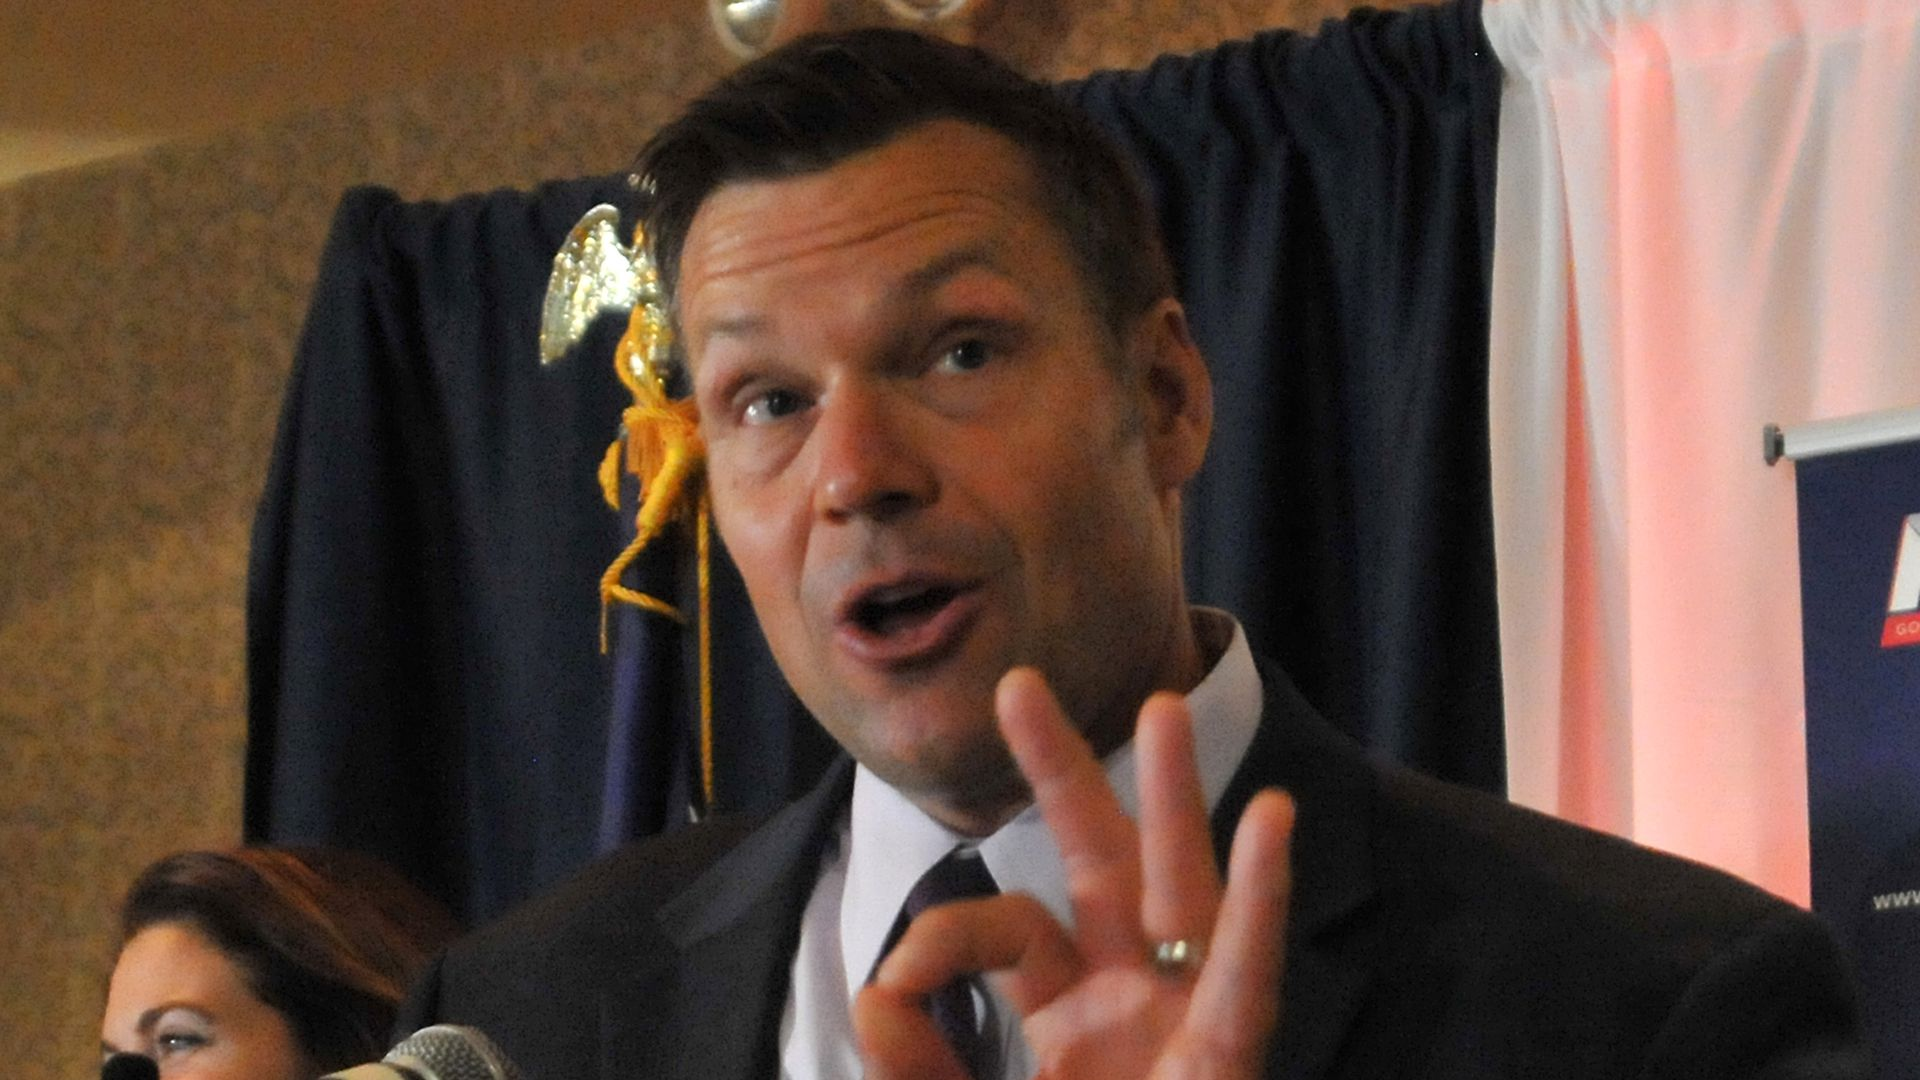 """Kris Kobach speaking at a microphone holding up the """"okay"""" sign with his left hand"""